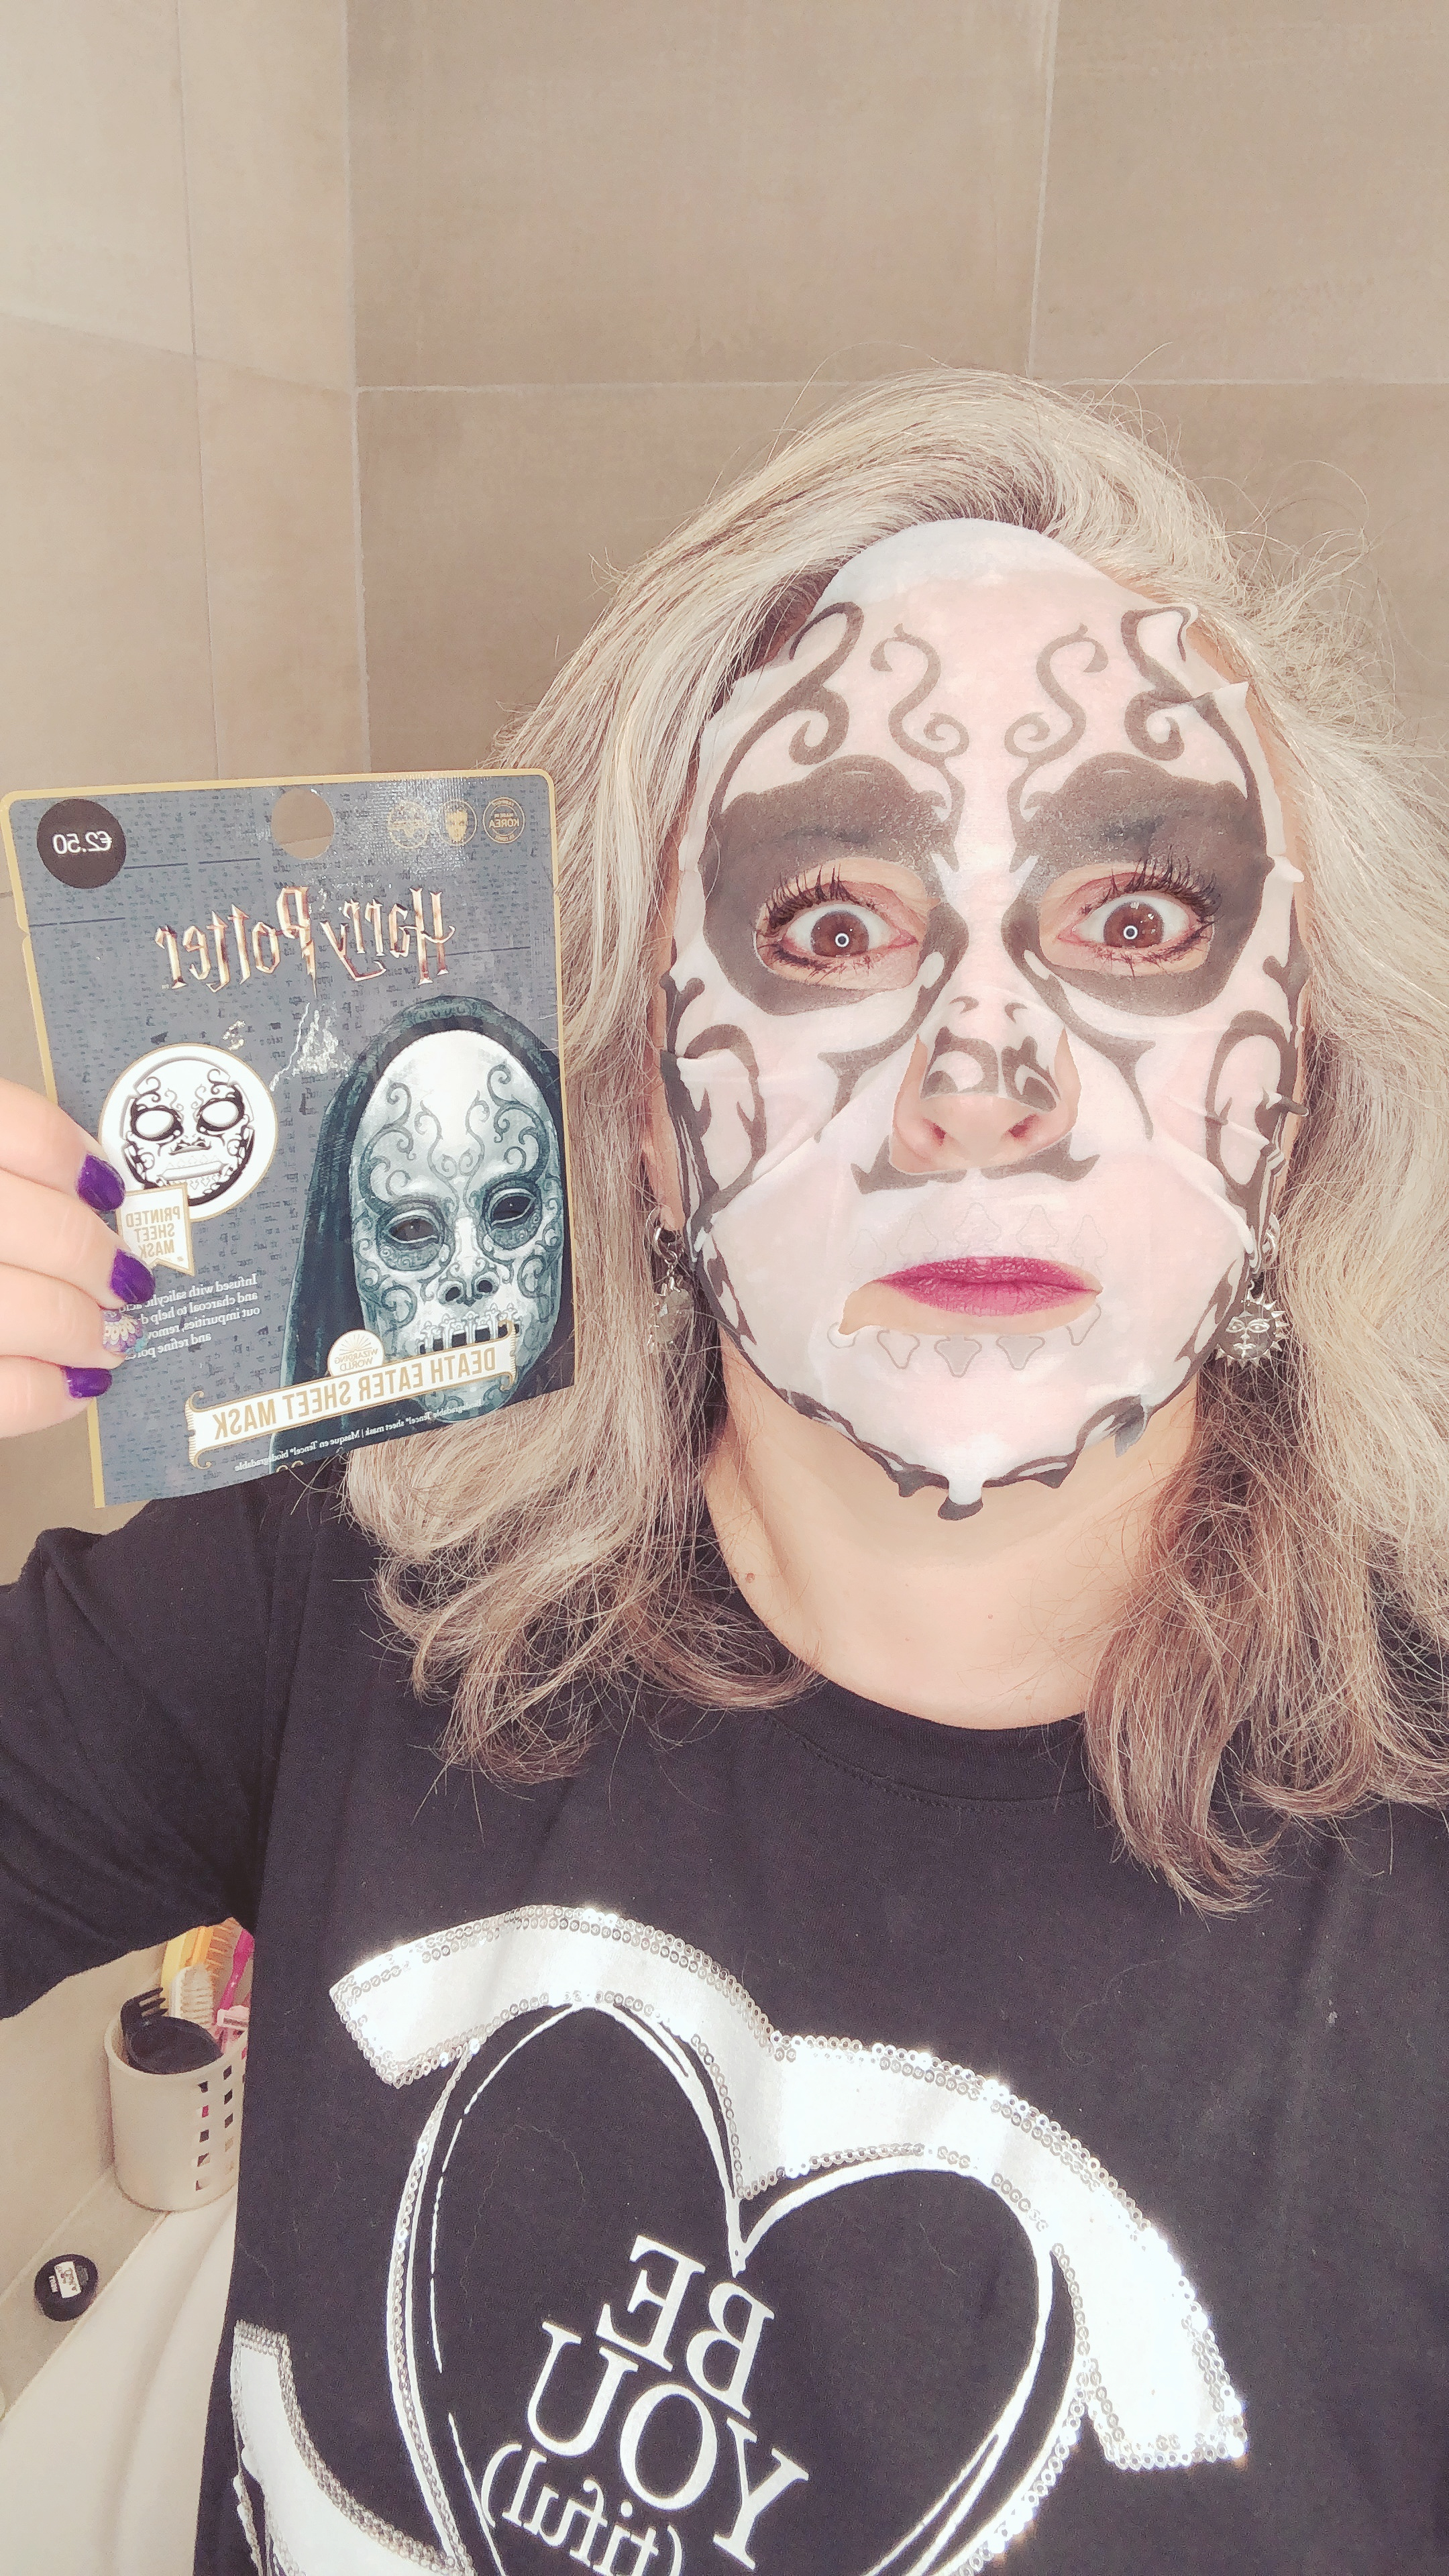 Masque Harry Potter death eater Primark